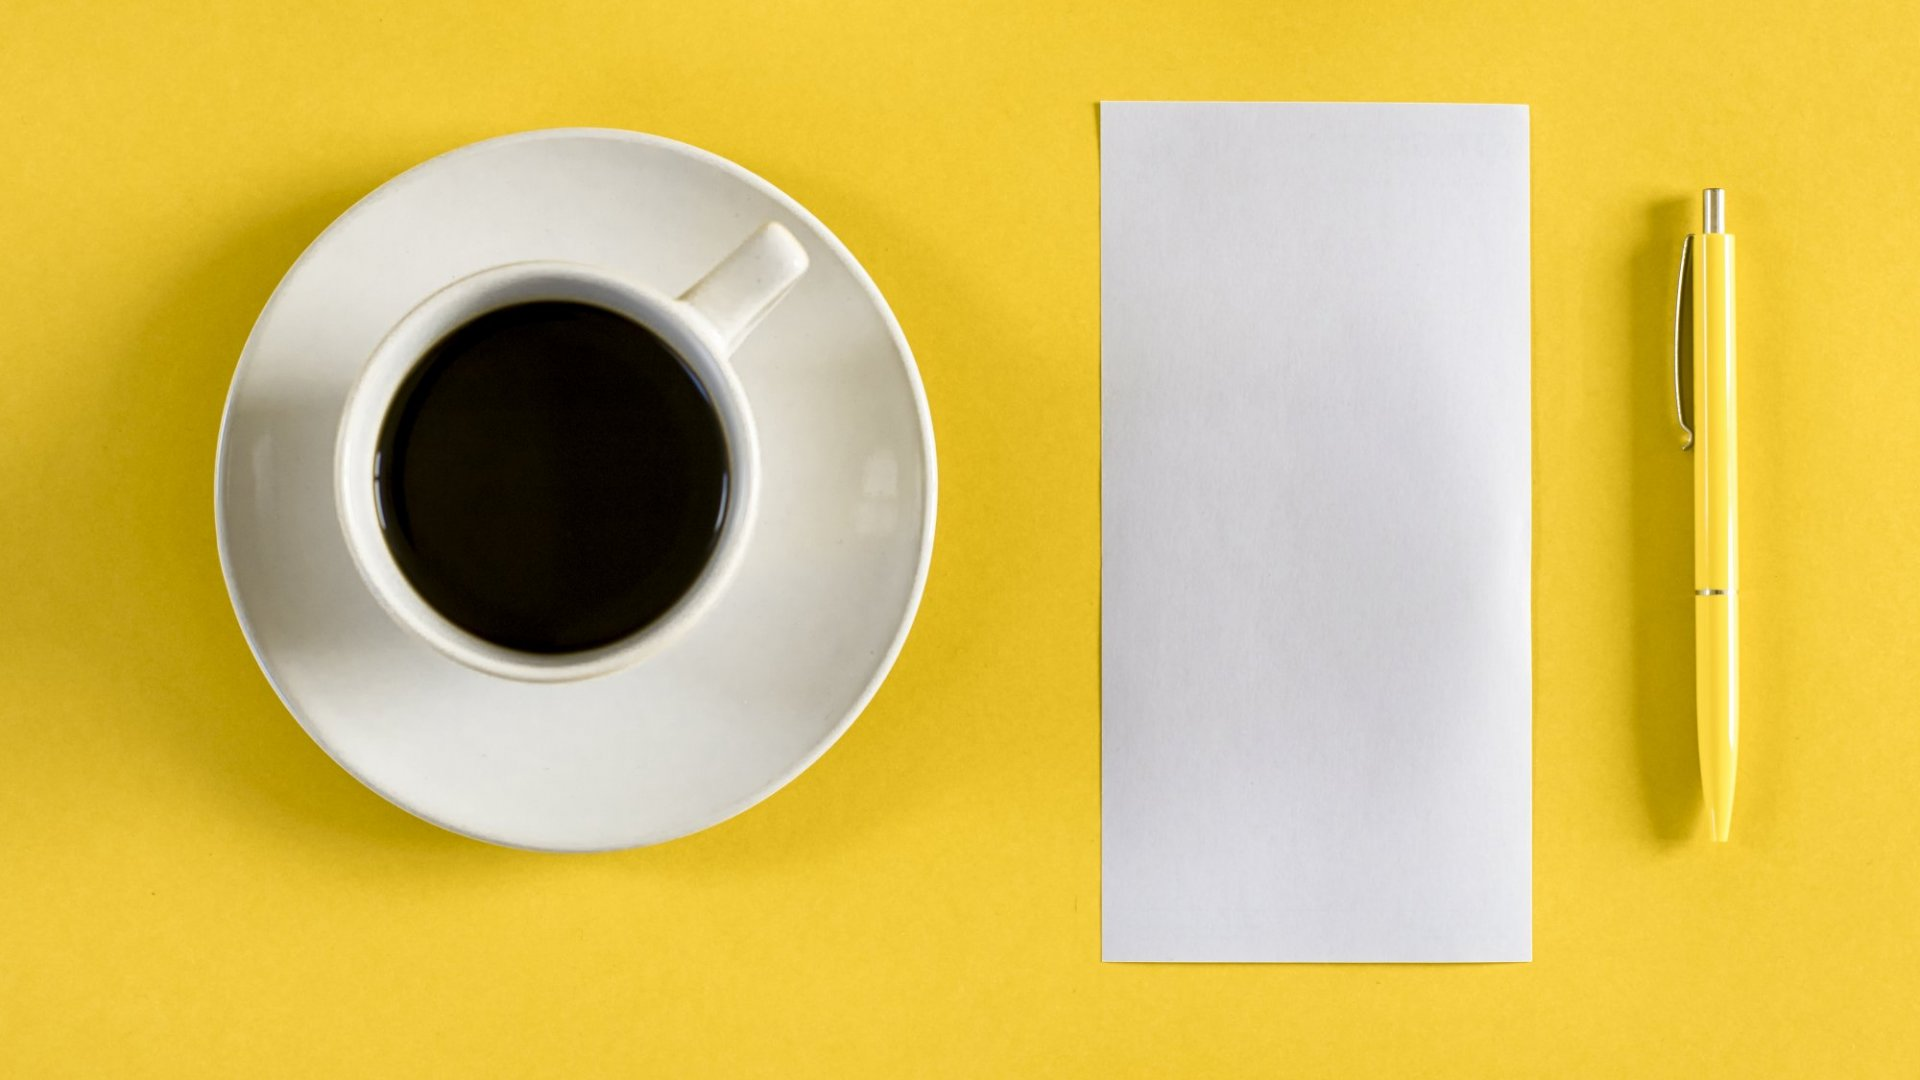 Tired of the Same Old Coffee Meeting? Try One of These 5 Activities Instead